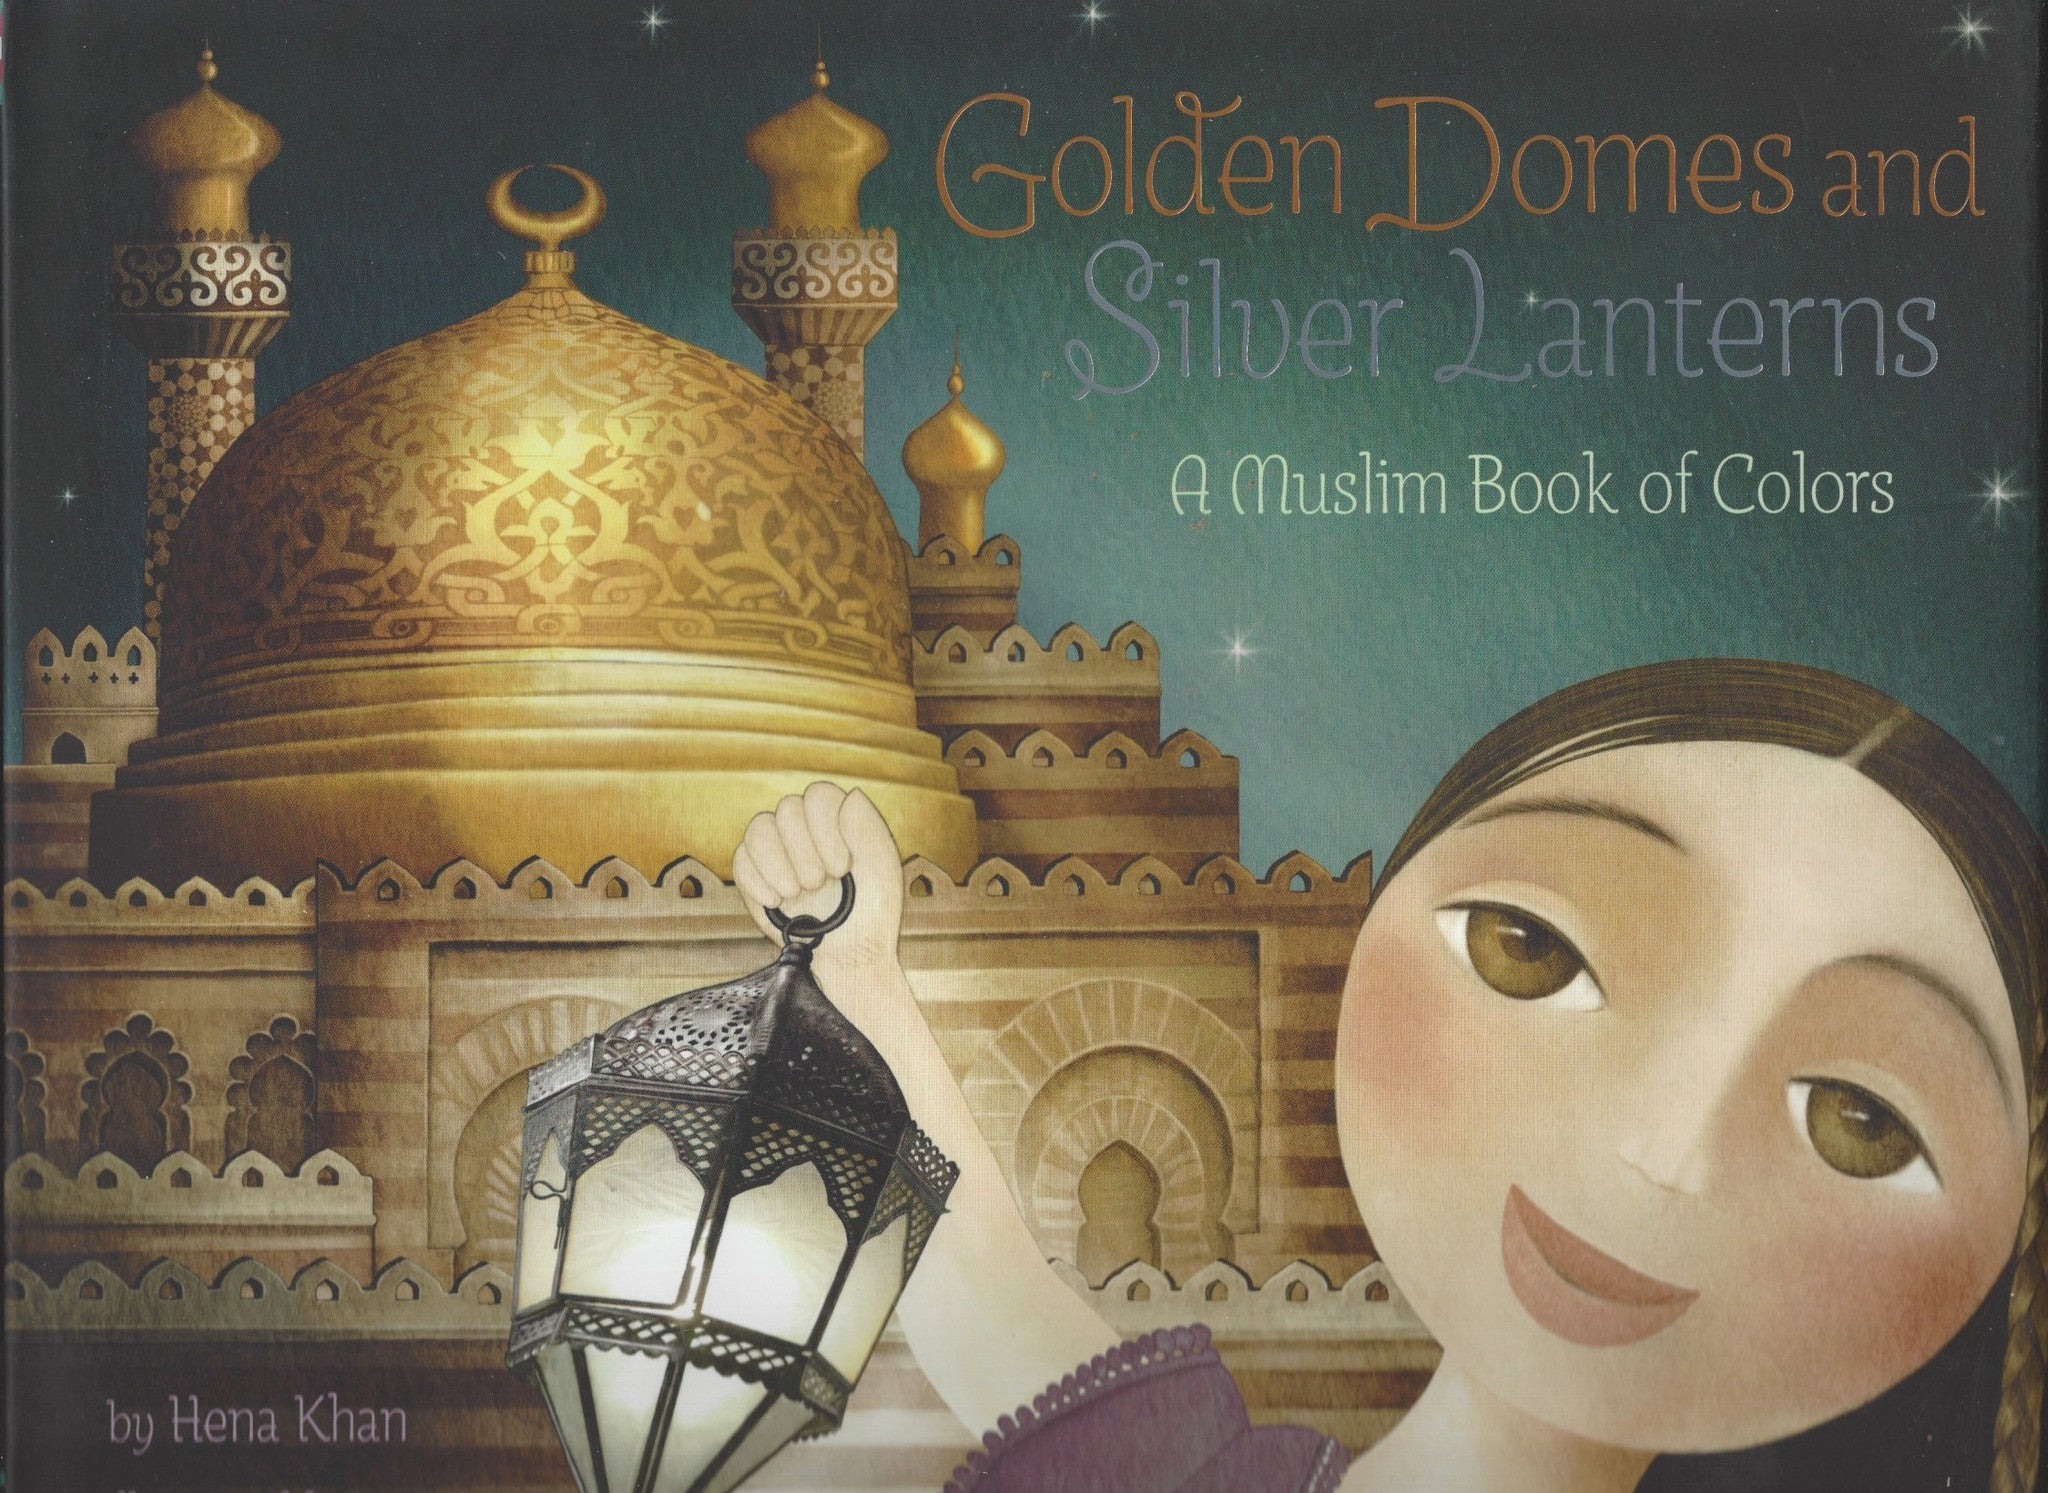 Golden Domes and Silver Lanterns: A Muslim Book of Colors Paperback, Book - Daybreak International Bookstore, Daybreak Press Global Bookshop